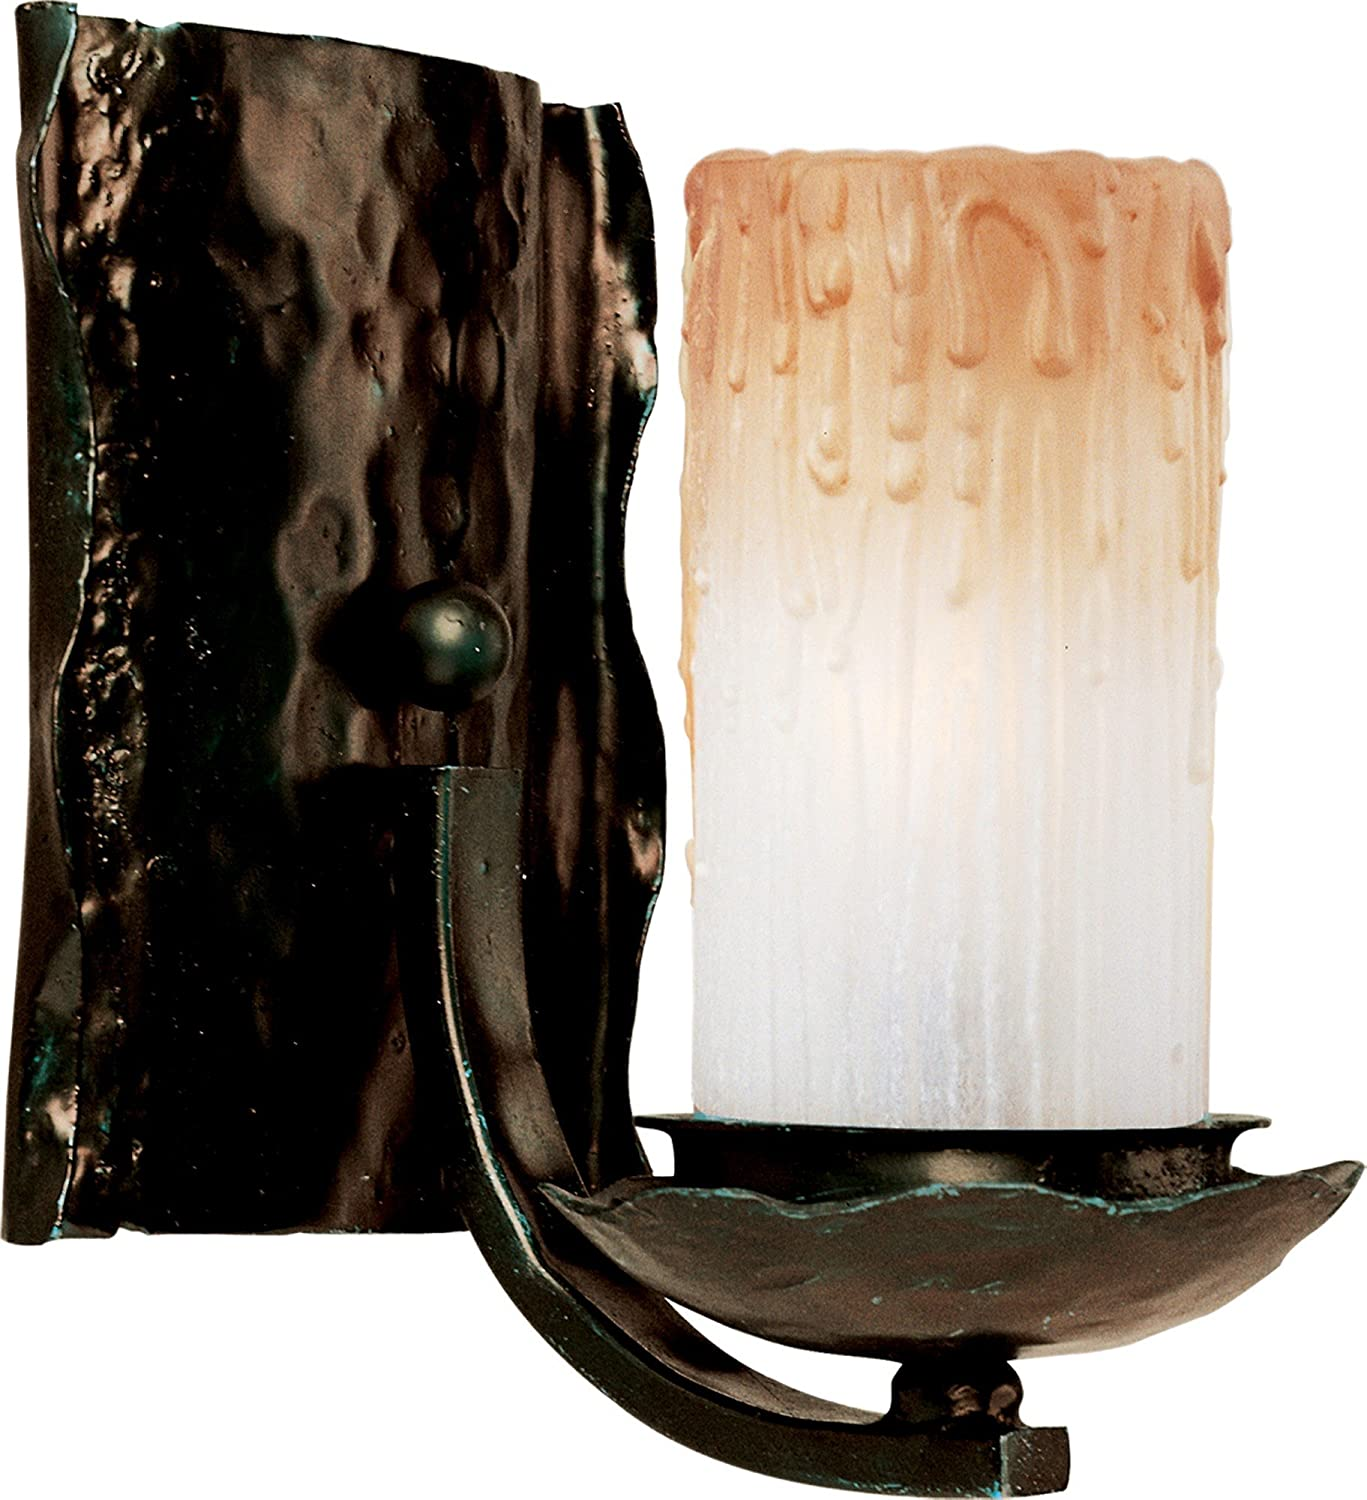 B000BGH52Y Maxim 10970WSOI Notre Dame 1-Light Wall Sconce Bath Vanity, Oil Rubbed Bronze Finish, Wilshire Glass, CA Incandescent Incandescent Bulb , 60W Max., Dry Safety Rating, Standard Dimmable, Fabric Shade Material, 2016 Rated Lumens 81ZUM3lEQHL